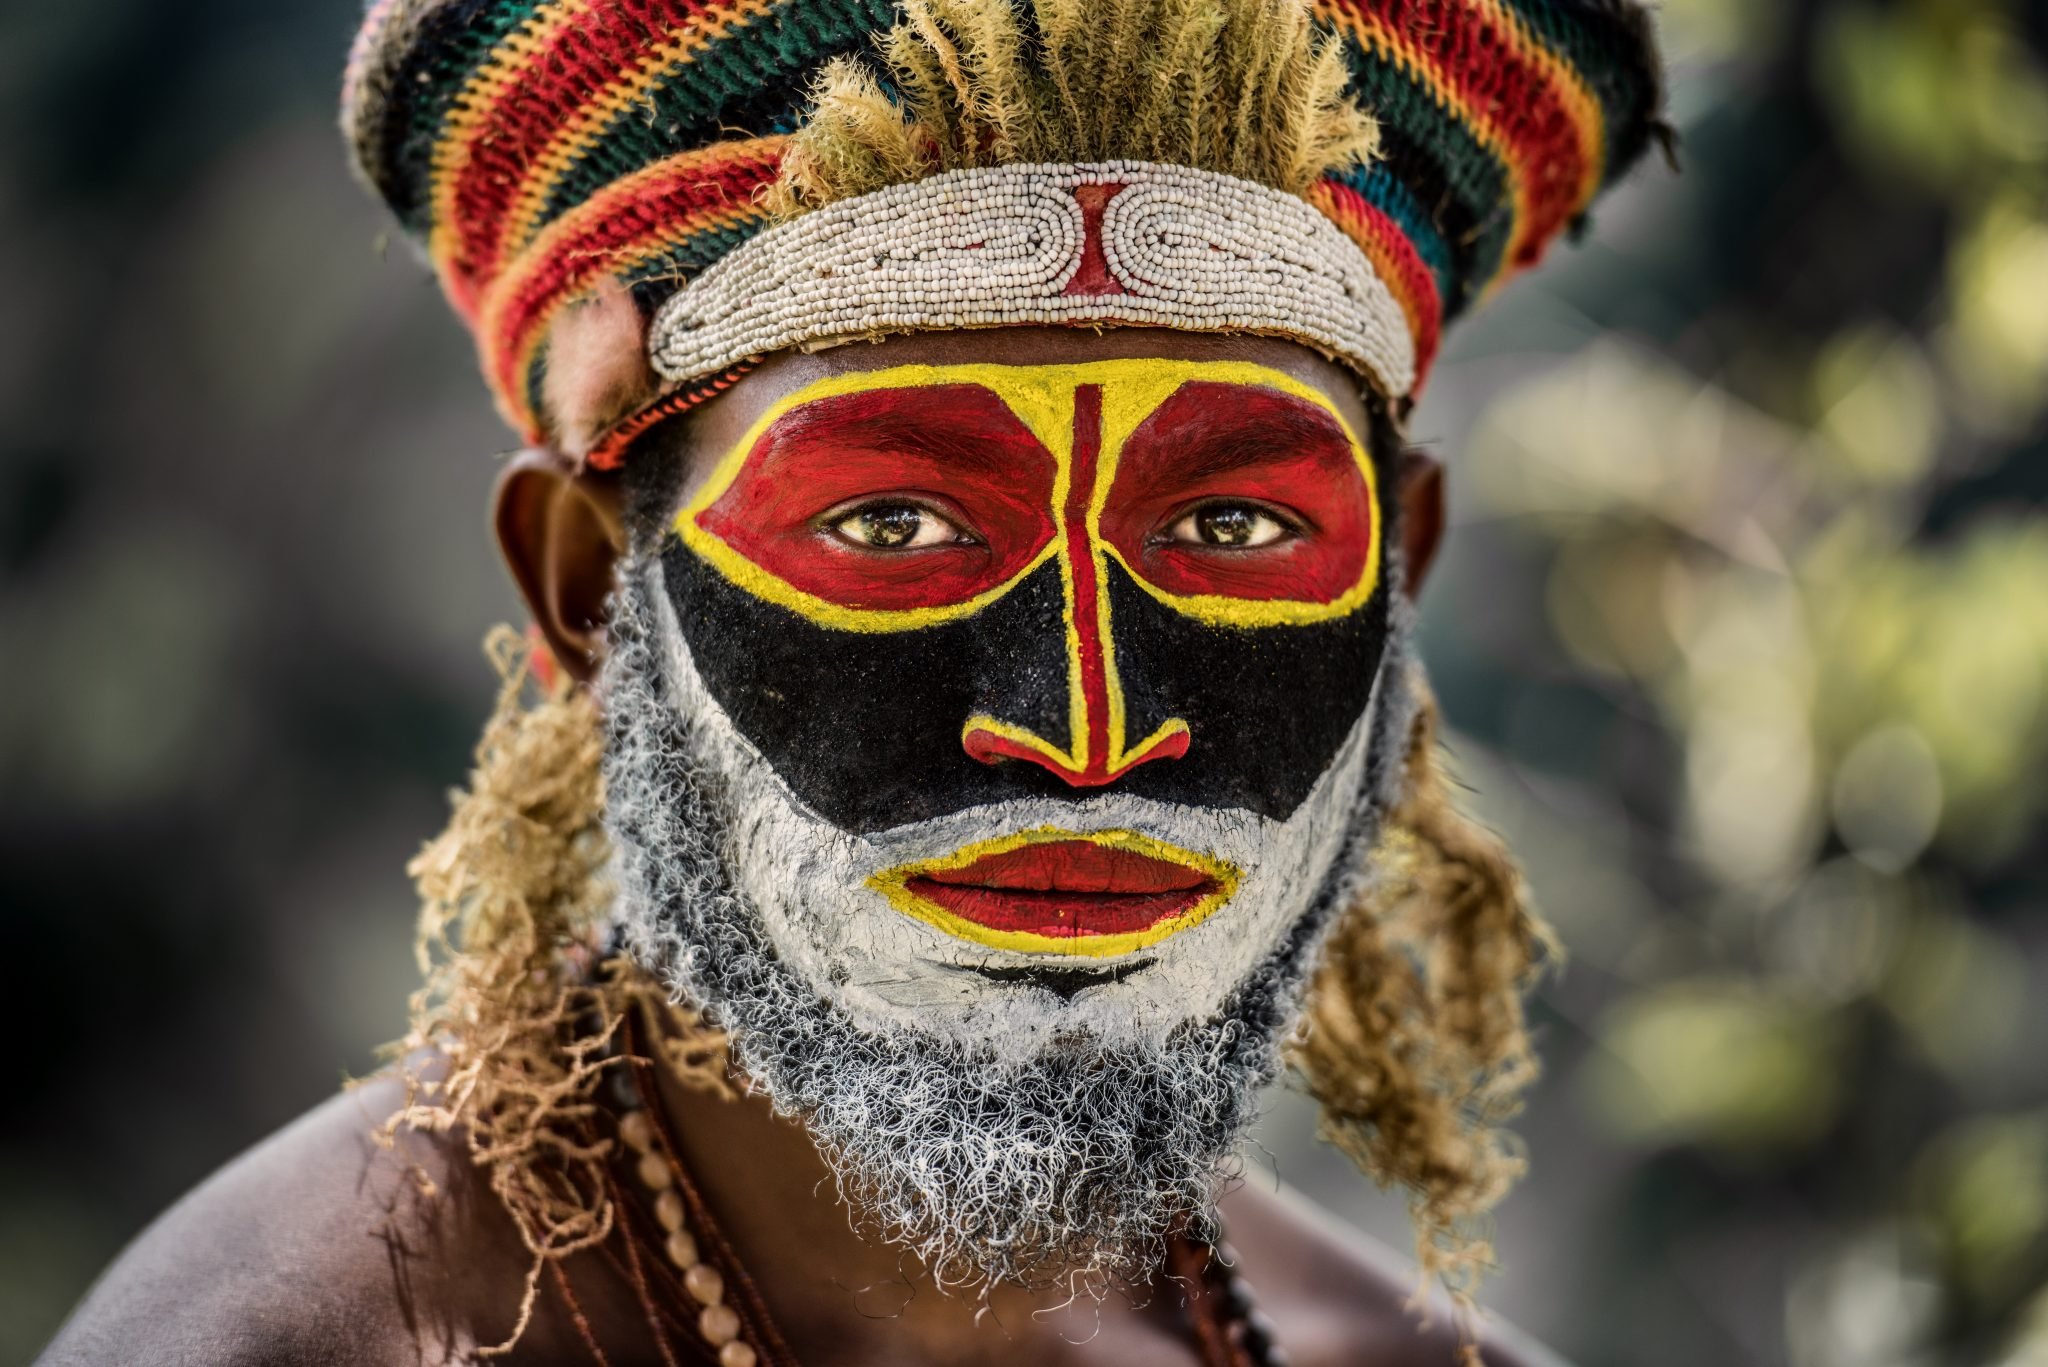 coffee-in-papua-new-guinea-man-tribal-painted-face